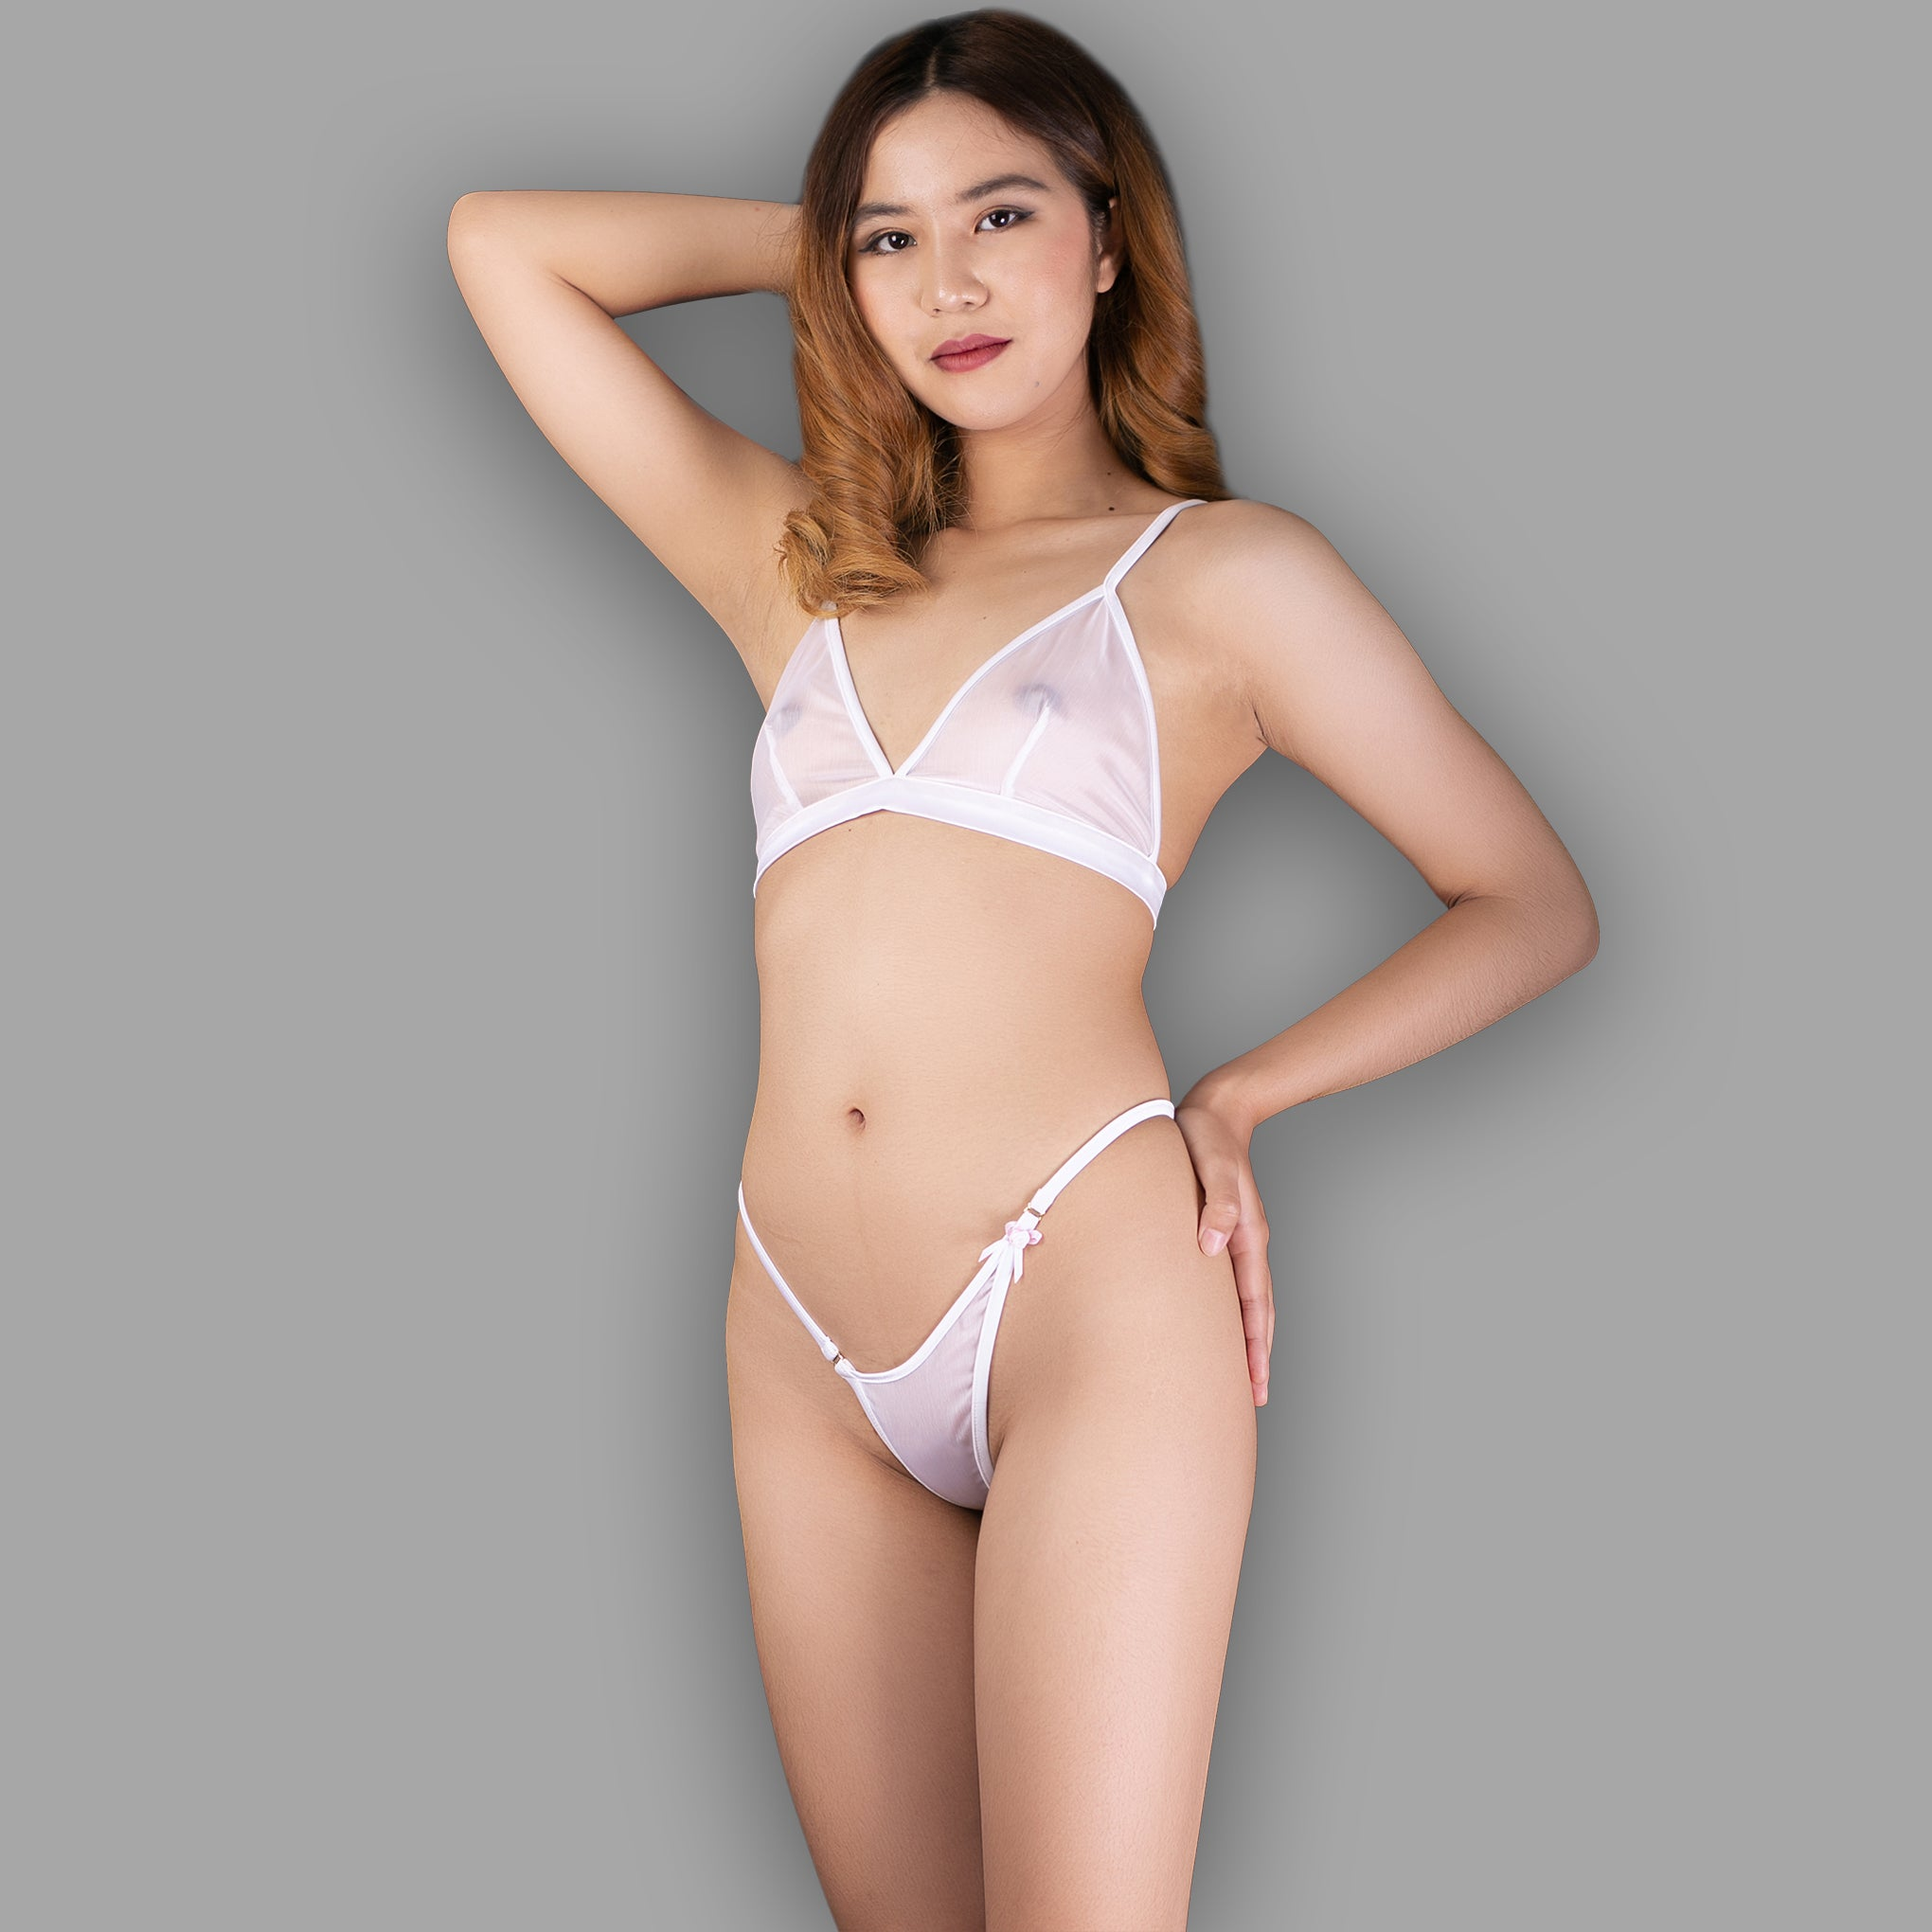 G string sexy pics Sheer Lingerie Panties See Through G String Sexy Erotic Gift For Her Thong In Sheer White Ange Dechu